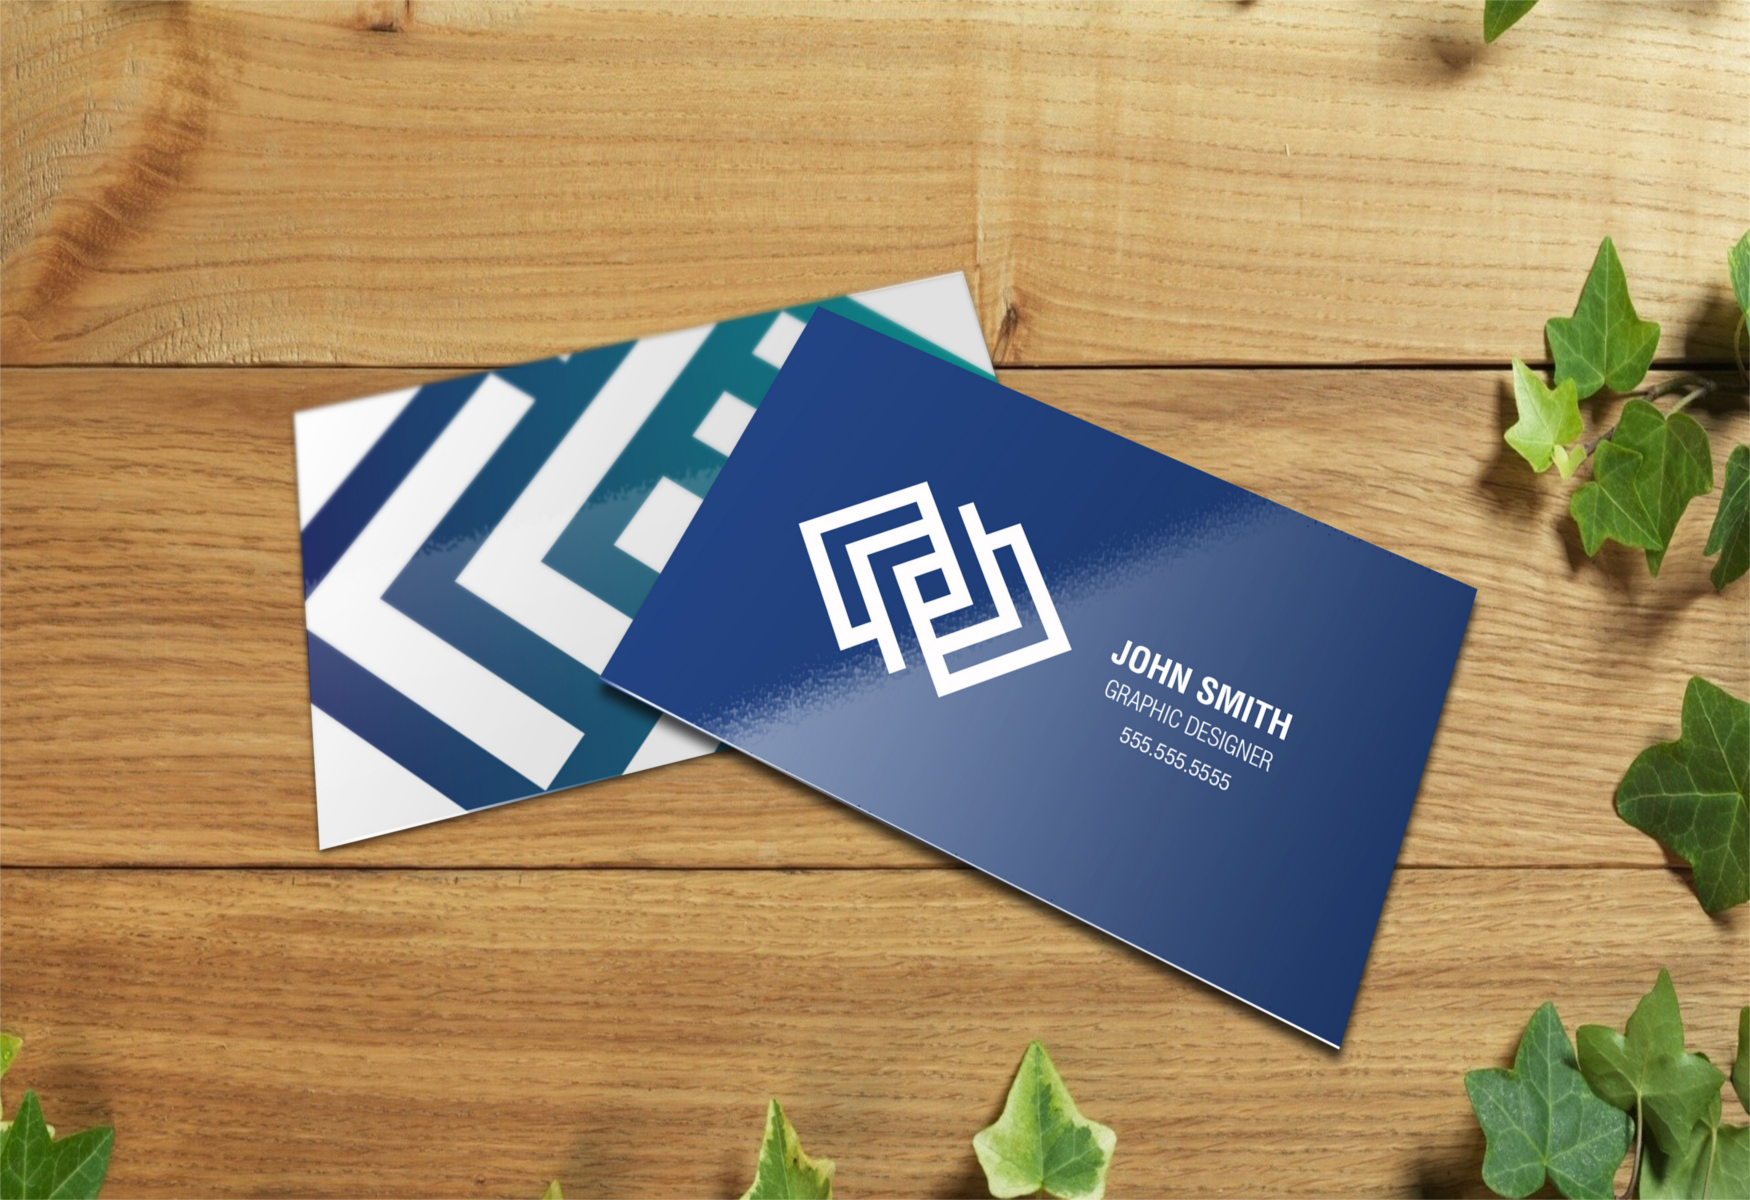 Glossy business cards Victoria BC